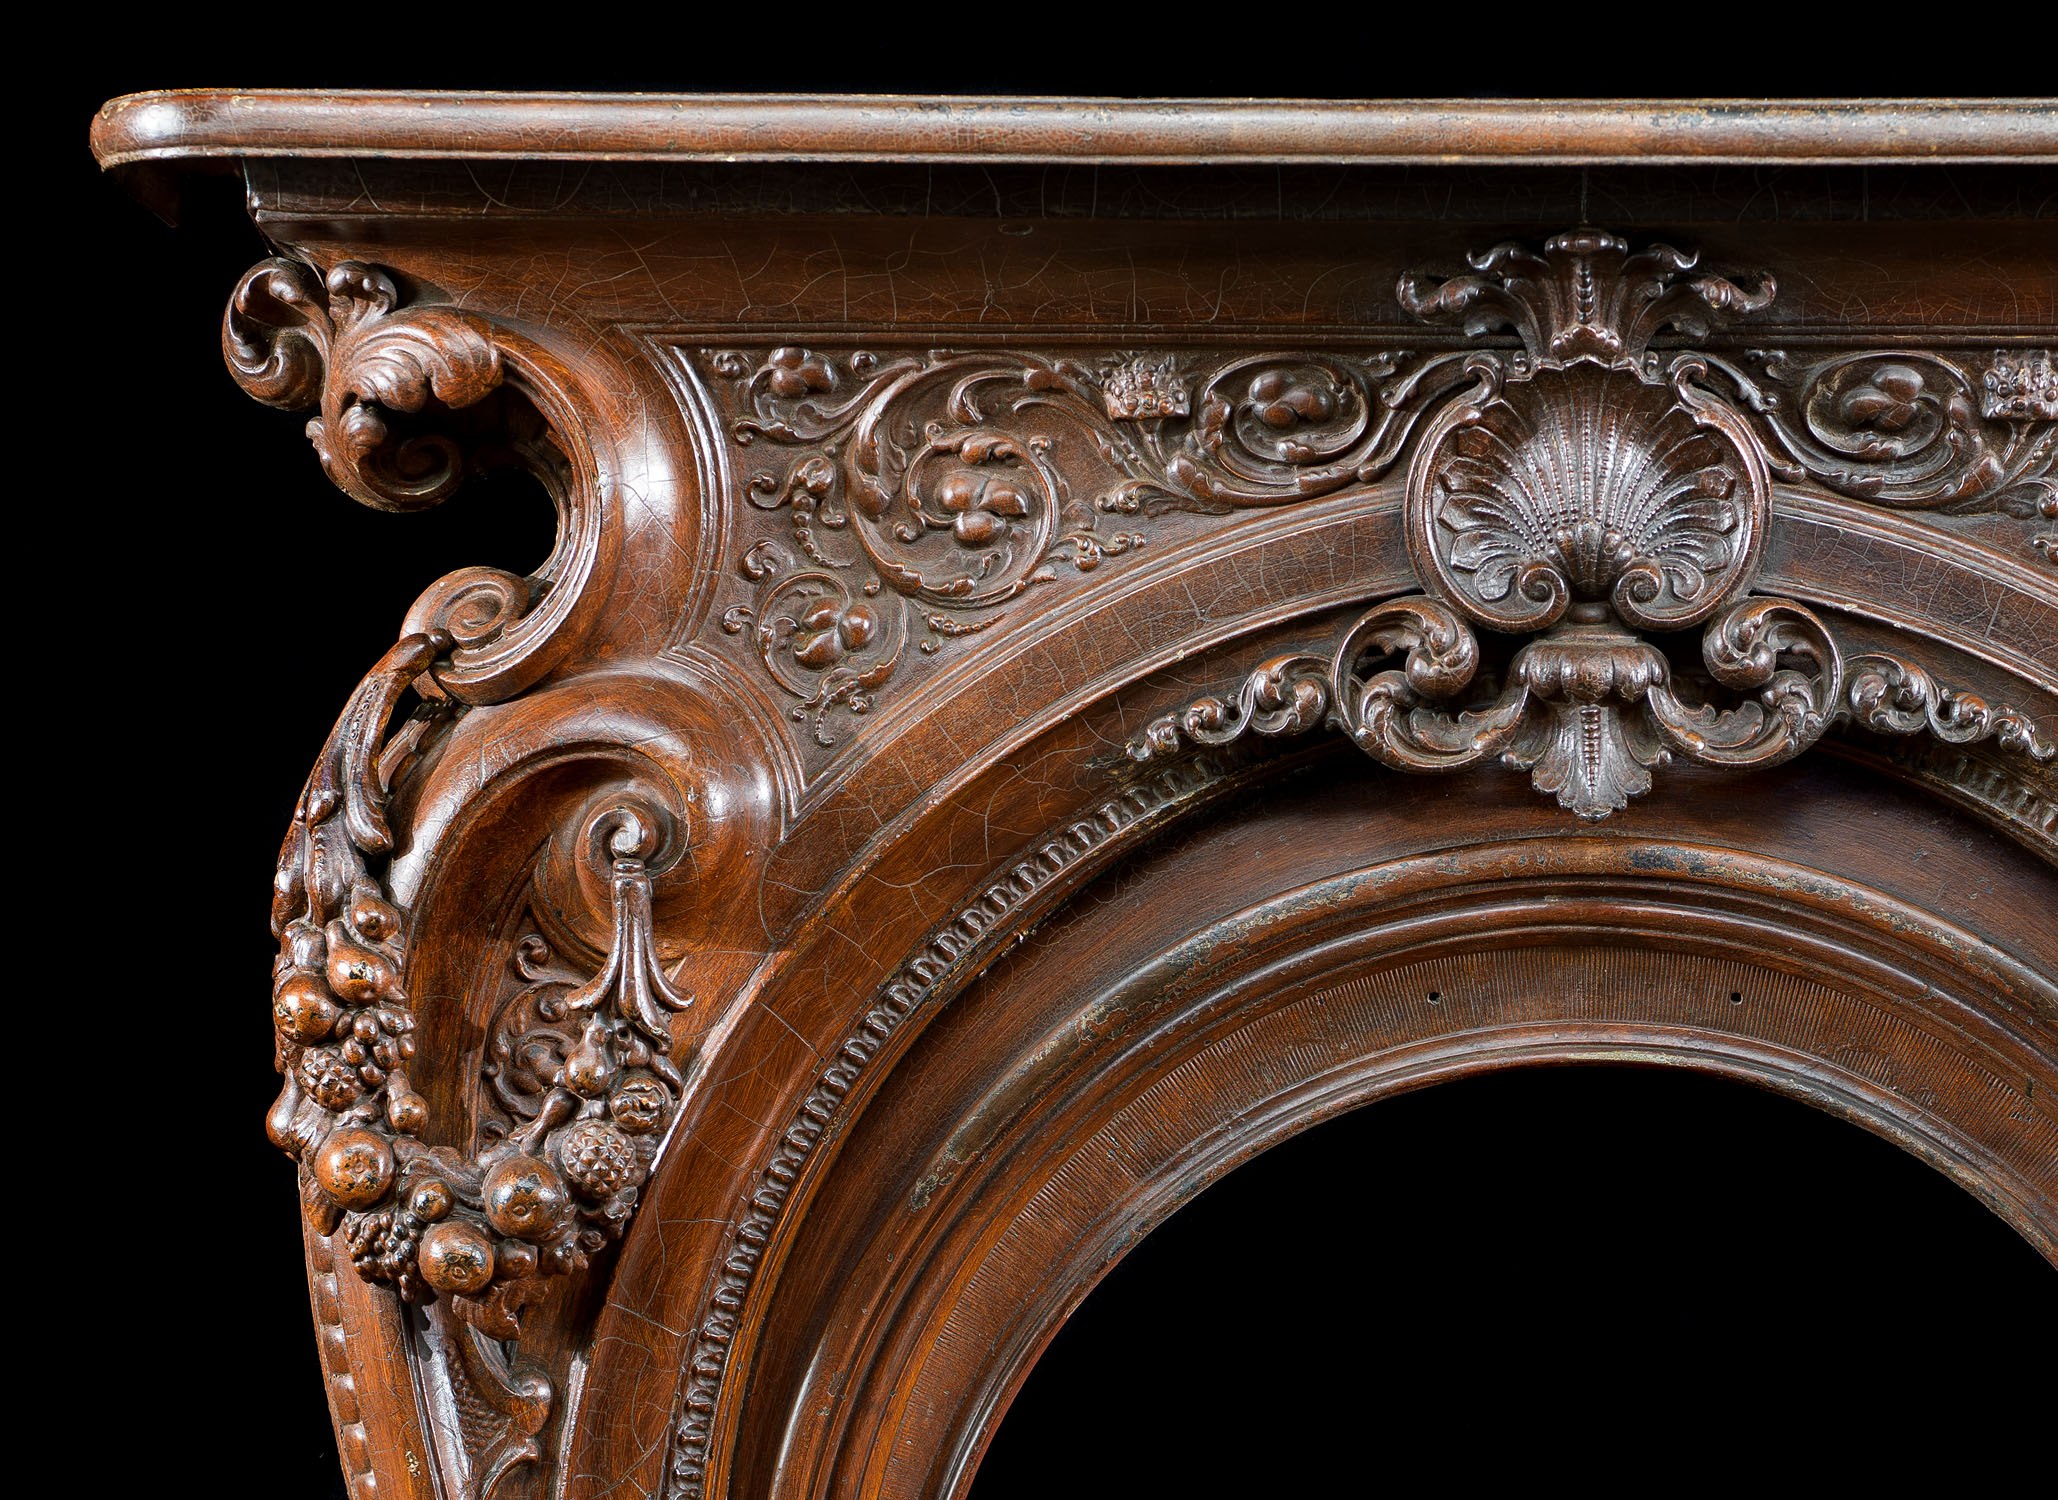 Highly ornate cast iron Victorian Rococo style Fireplace surround